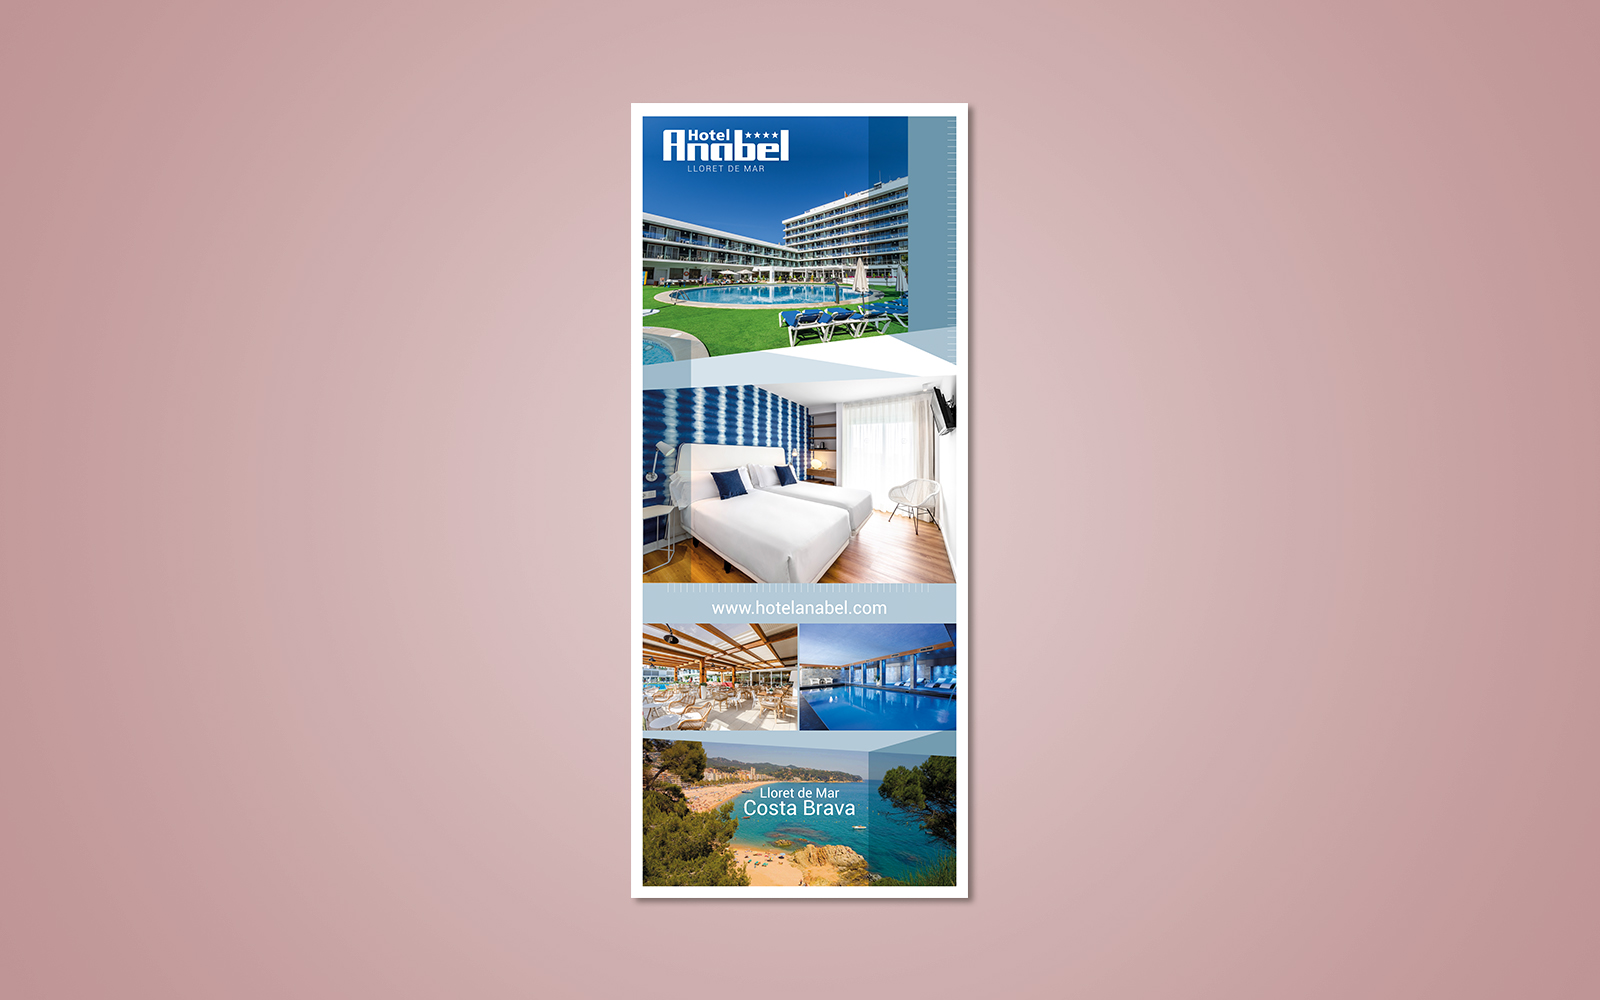 Roll Up Hotel Anabel